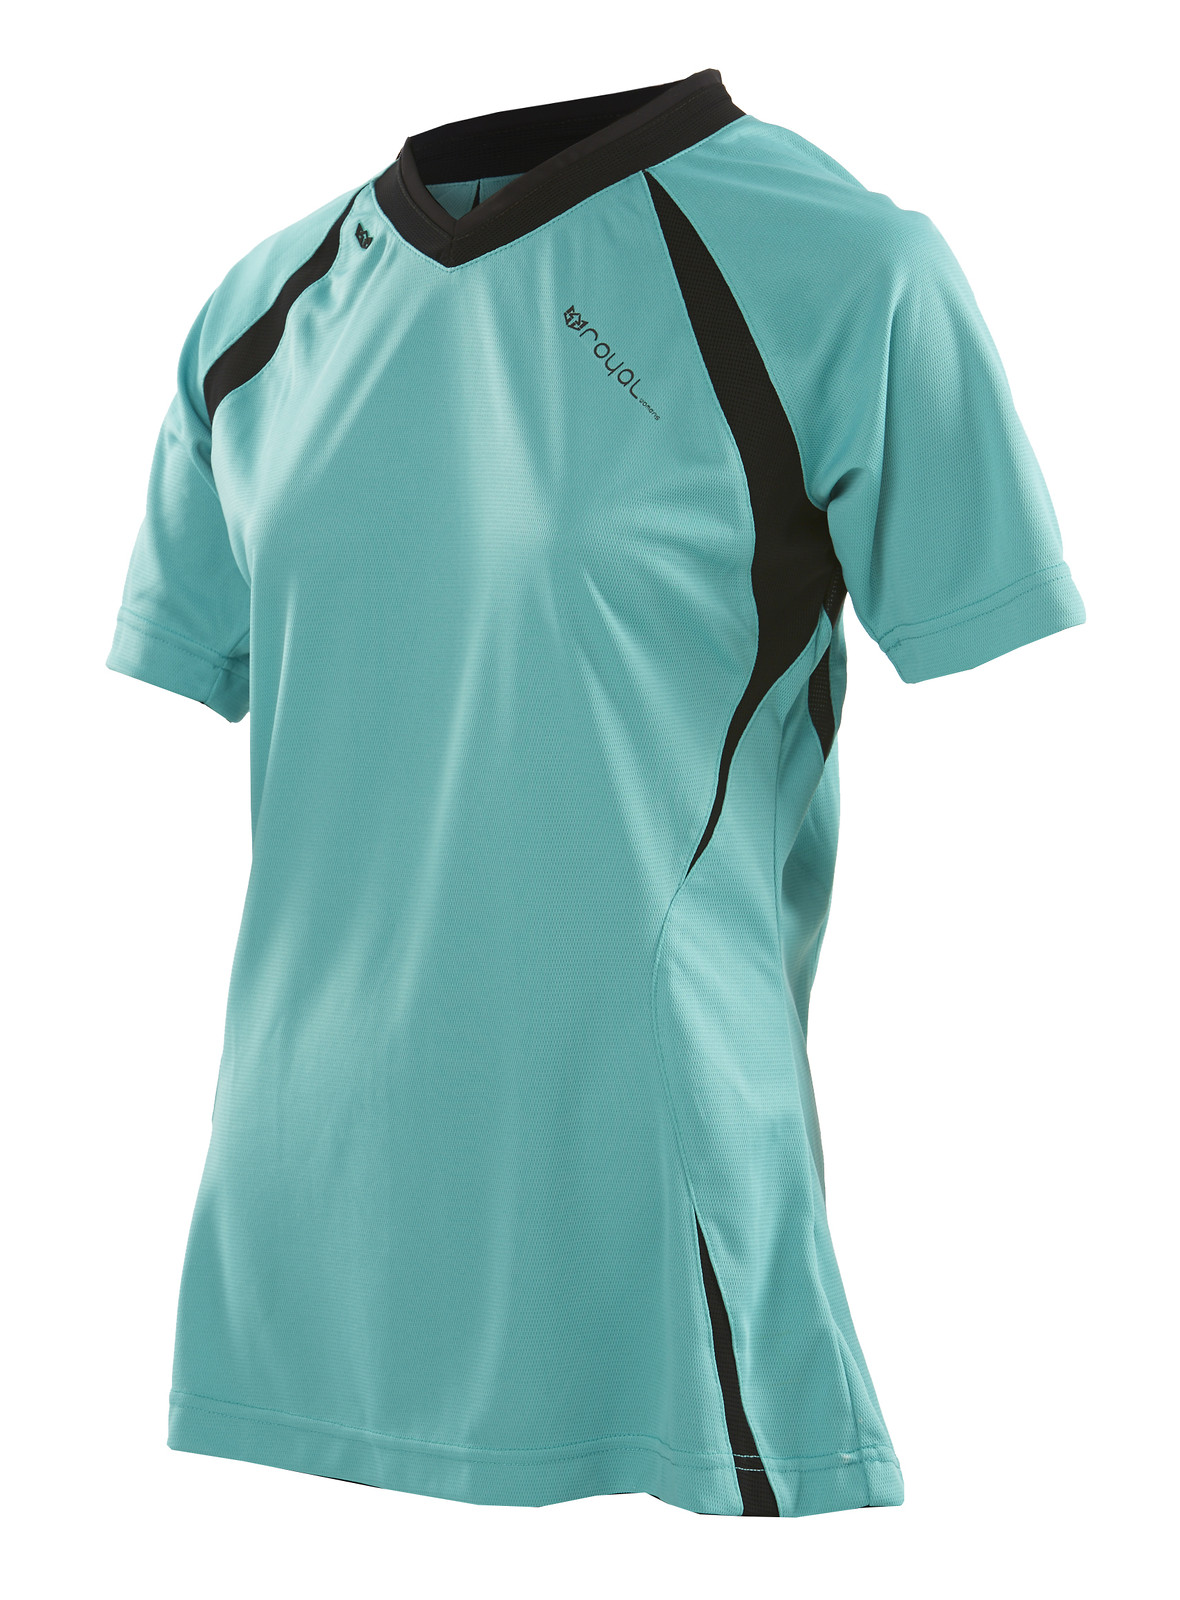 Royal 2014 Women's Concept SS Jersey girl concept ceramic f